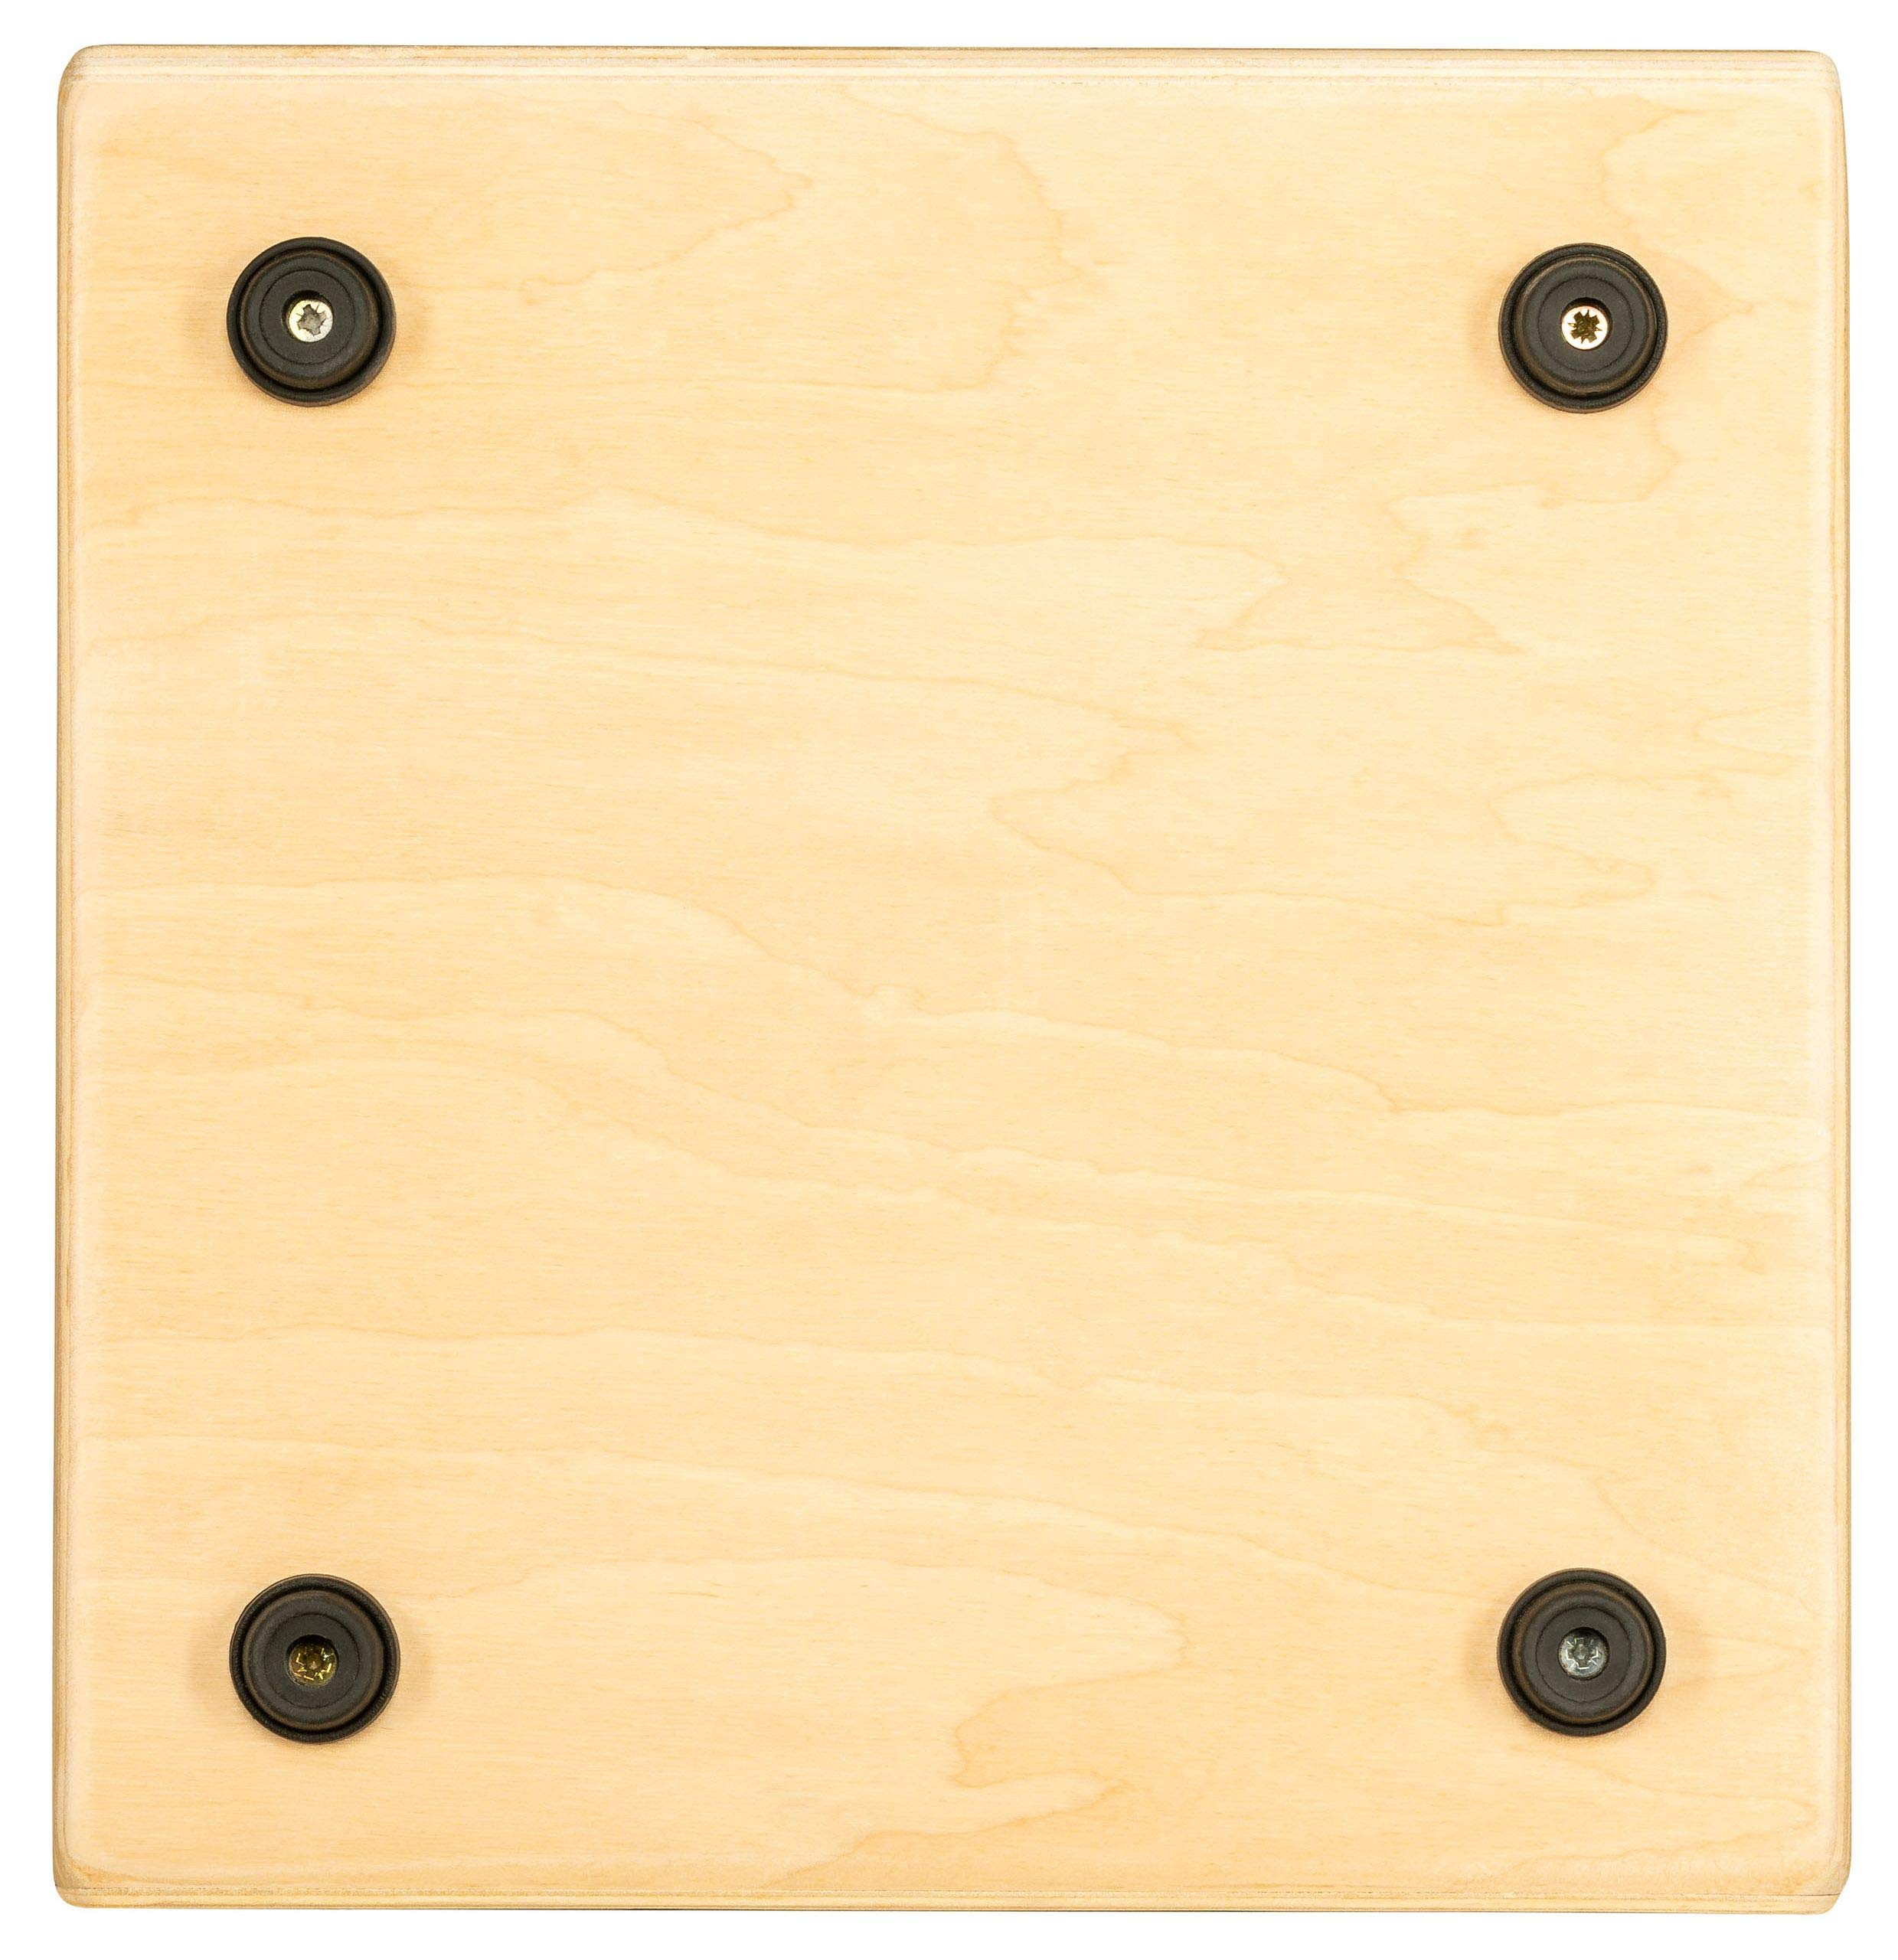 Meinl Cajon Box Drum with Internal Snares - MADE IN EUROPE - Baltic Birch Wood, Compact Size, 2-YEAR WARRANTY (JC50B) by Meinl Percussion (Image #5)